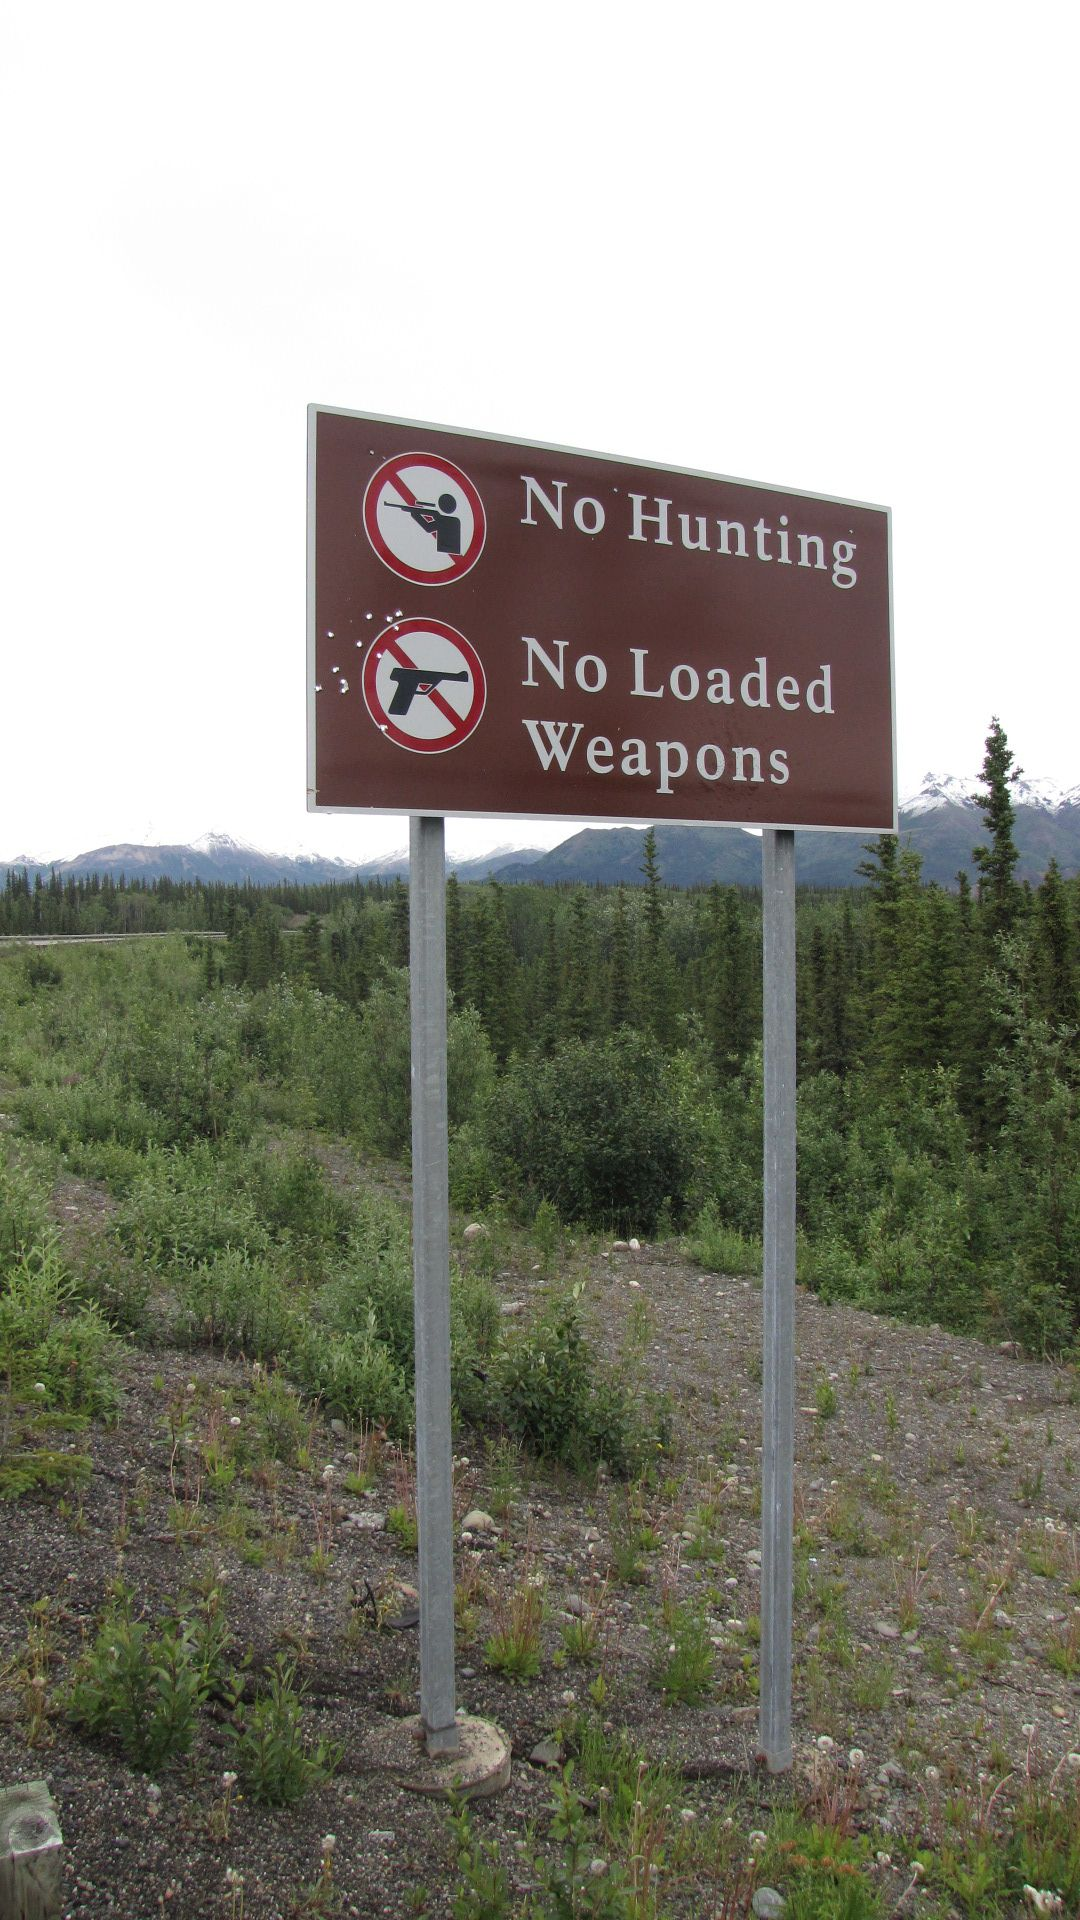 Denali Nat Pk - Alaskan 'Right to bear arms' statement (look closely at the mid-left of the sign...)